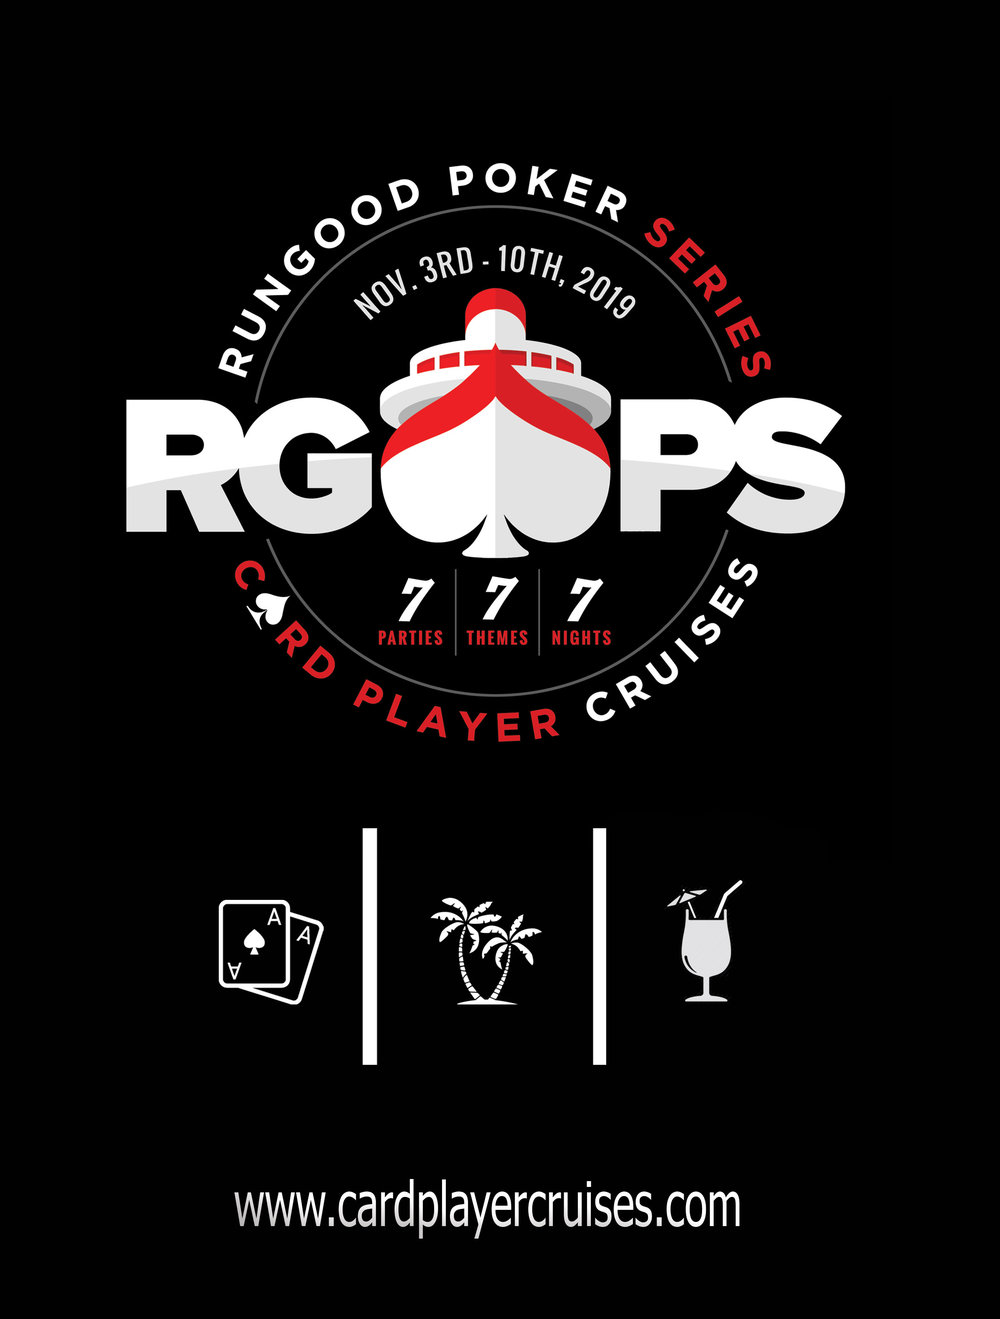 This graphic was made for the promotion of the upcoming RunGood cruise.